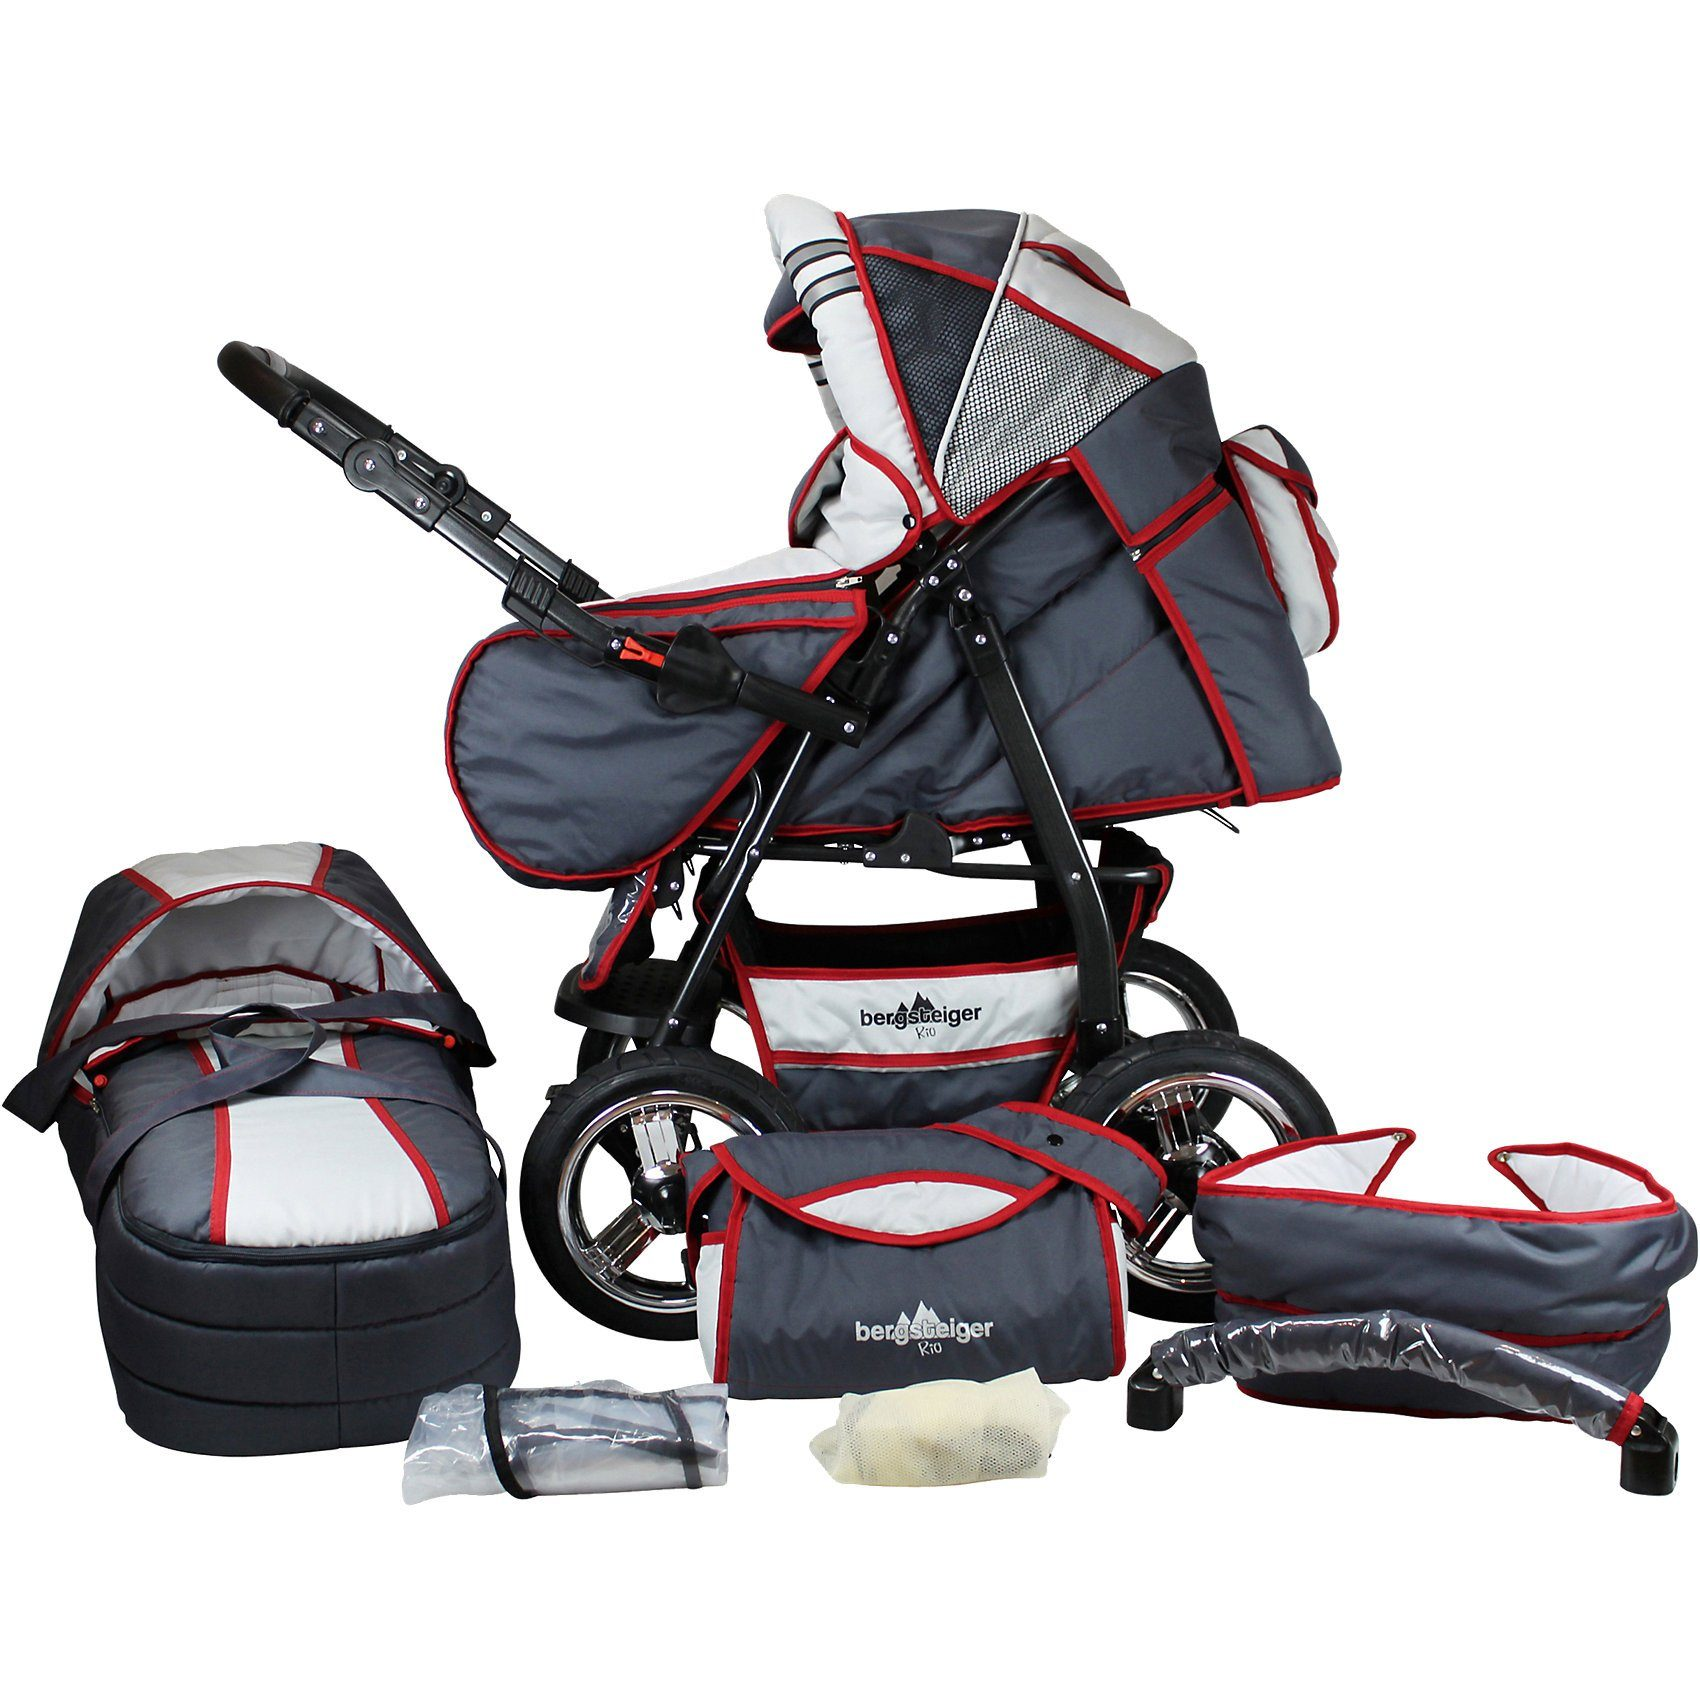 Bergsteiger Kombi Kinderwagen Rio, 10 tlg., grey & red stripes